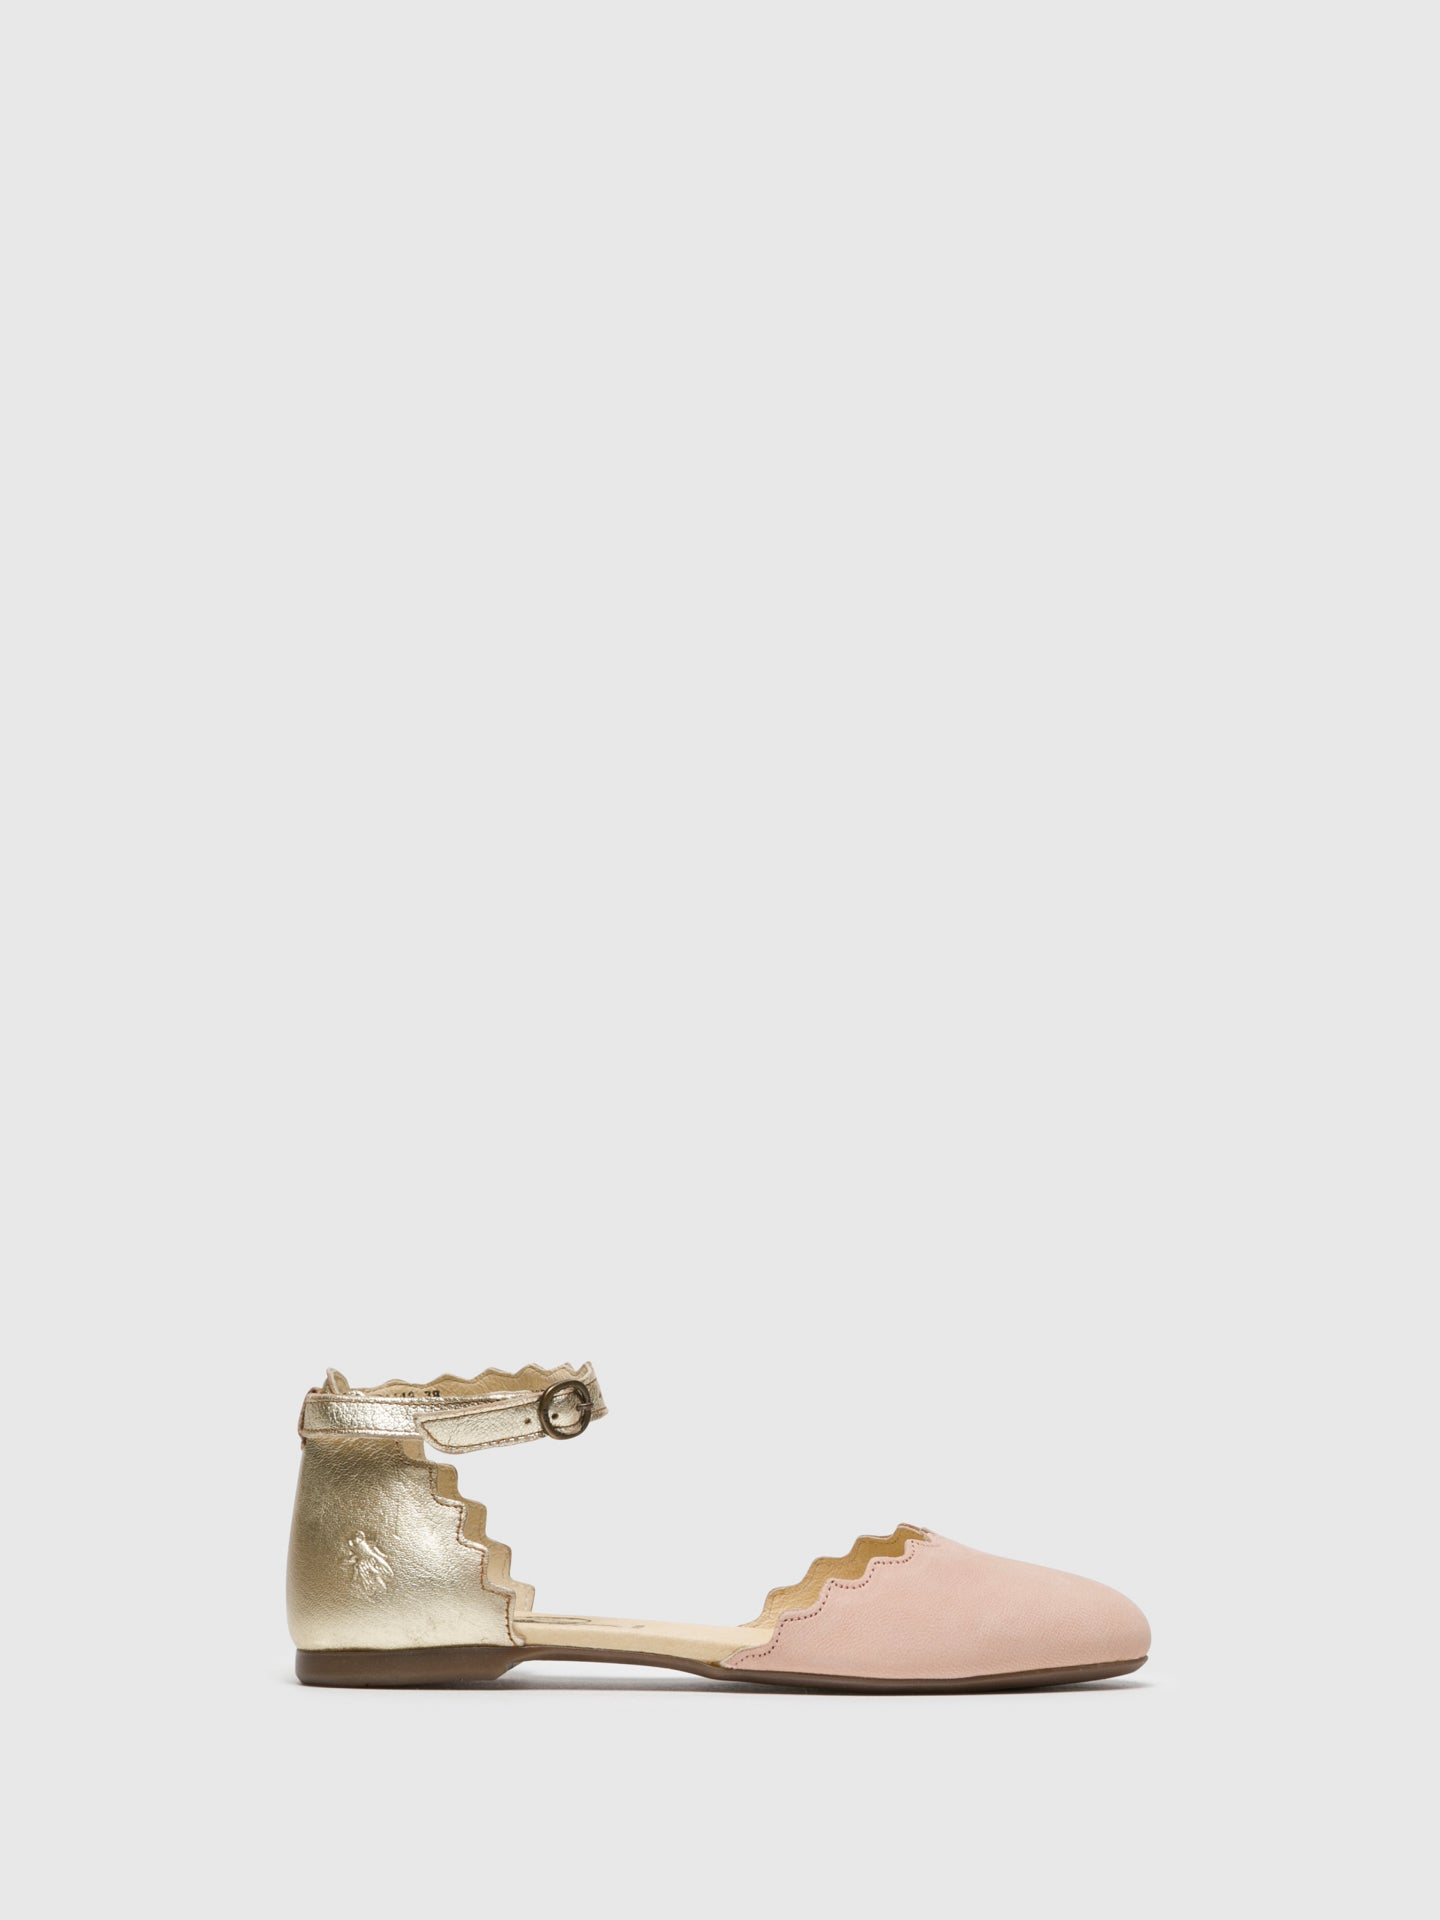 Fly London LightPink Buckle Sandals